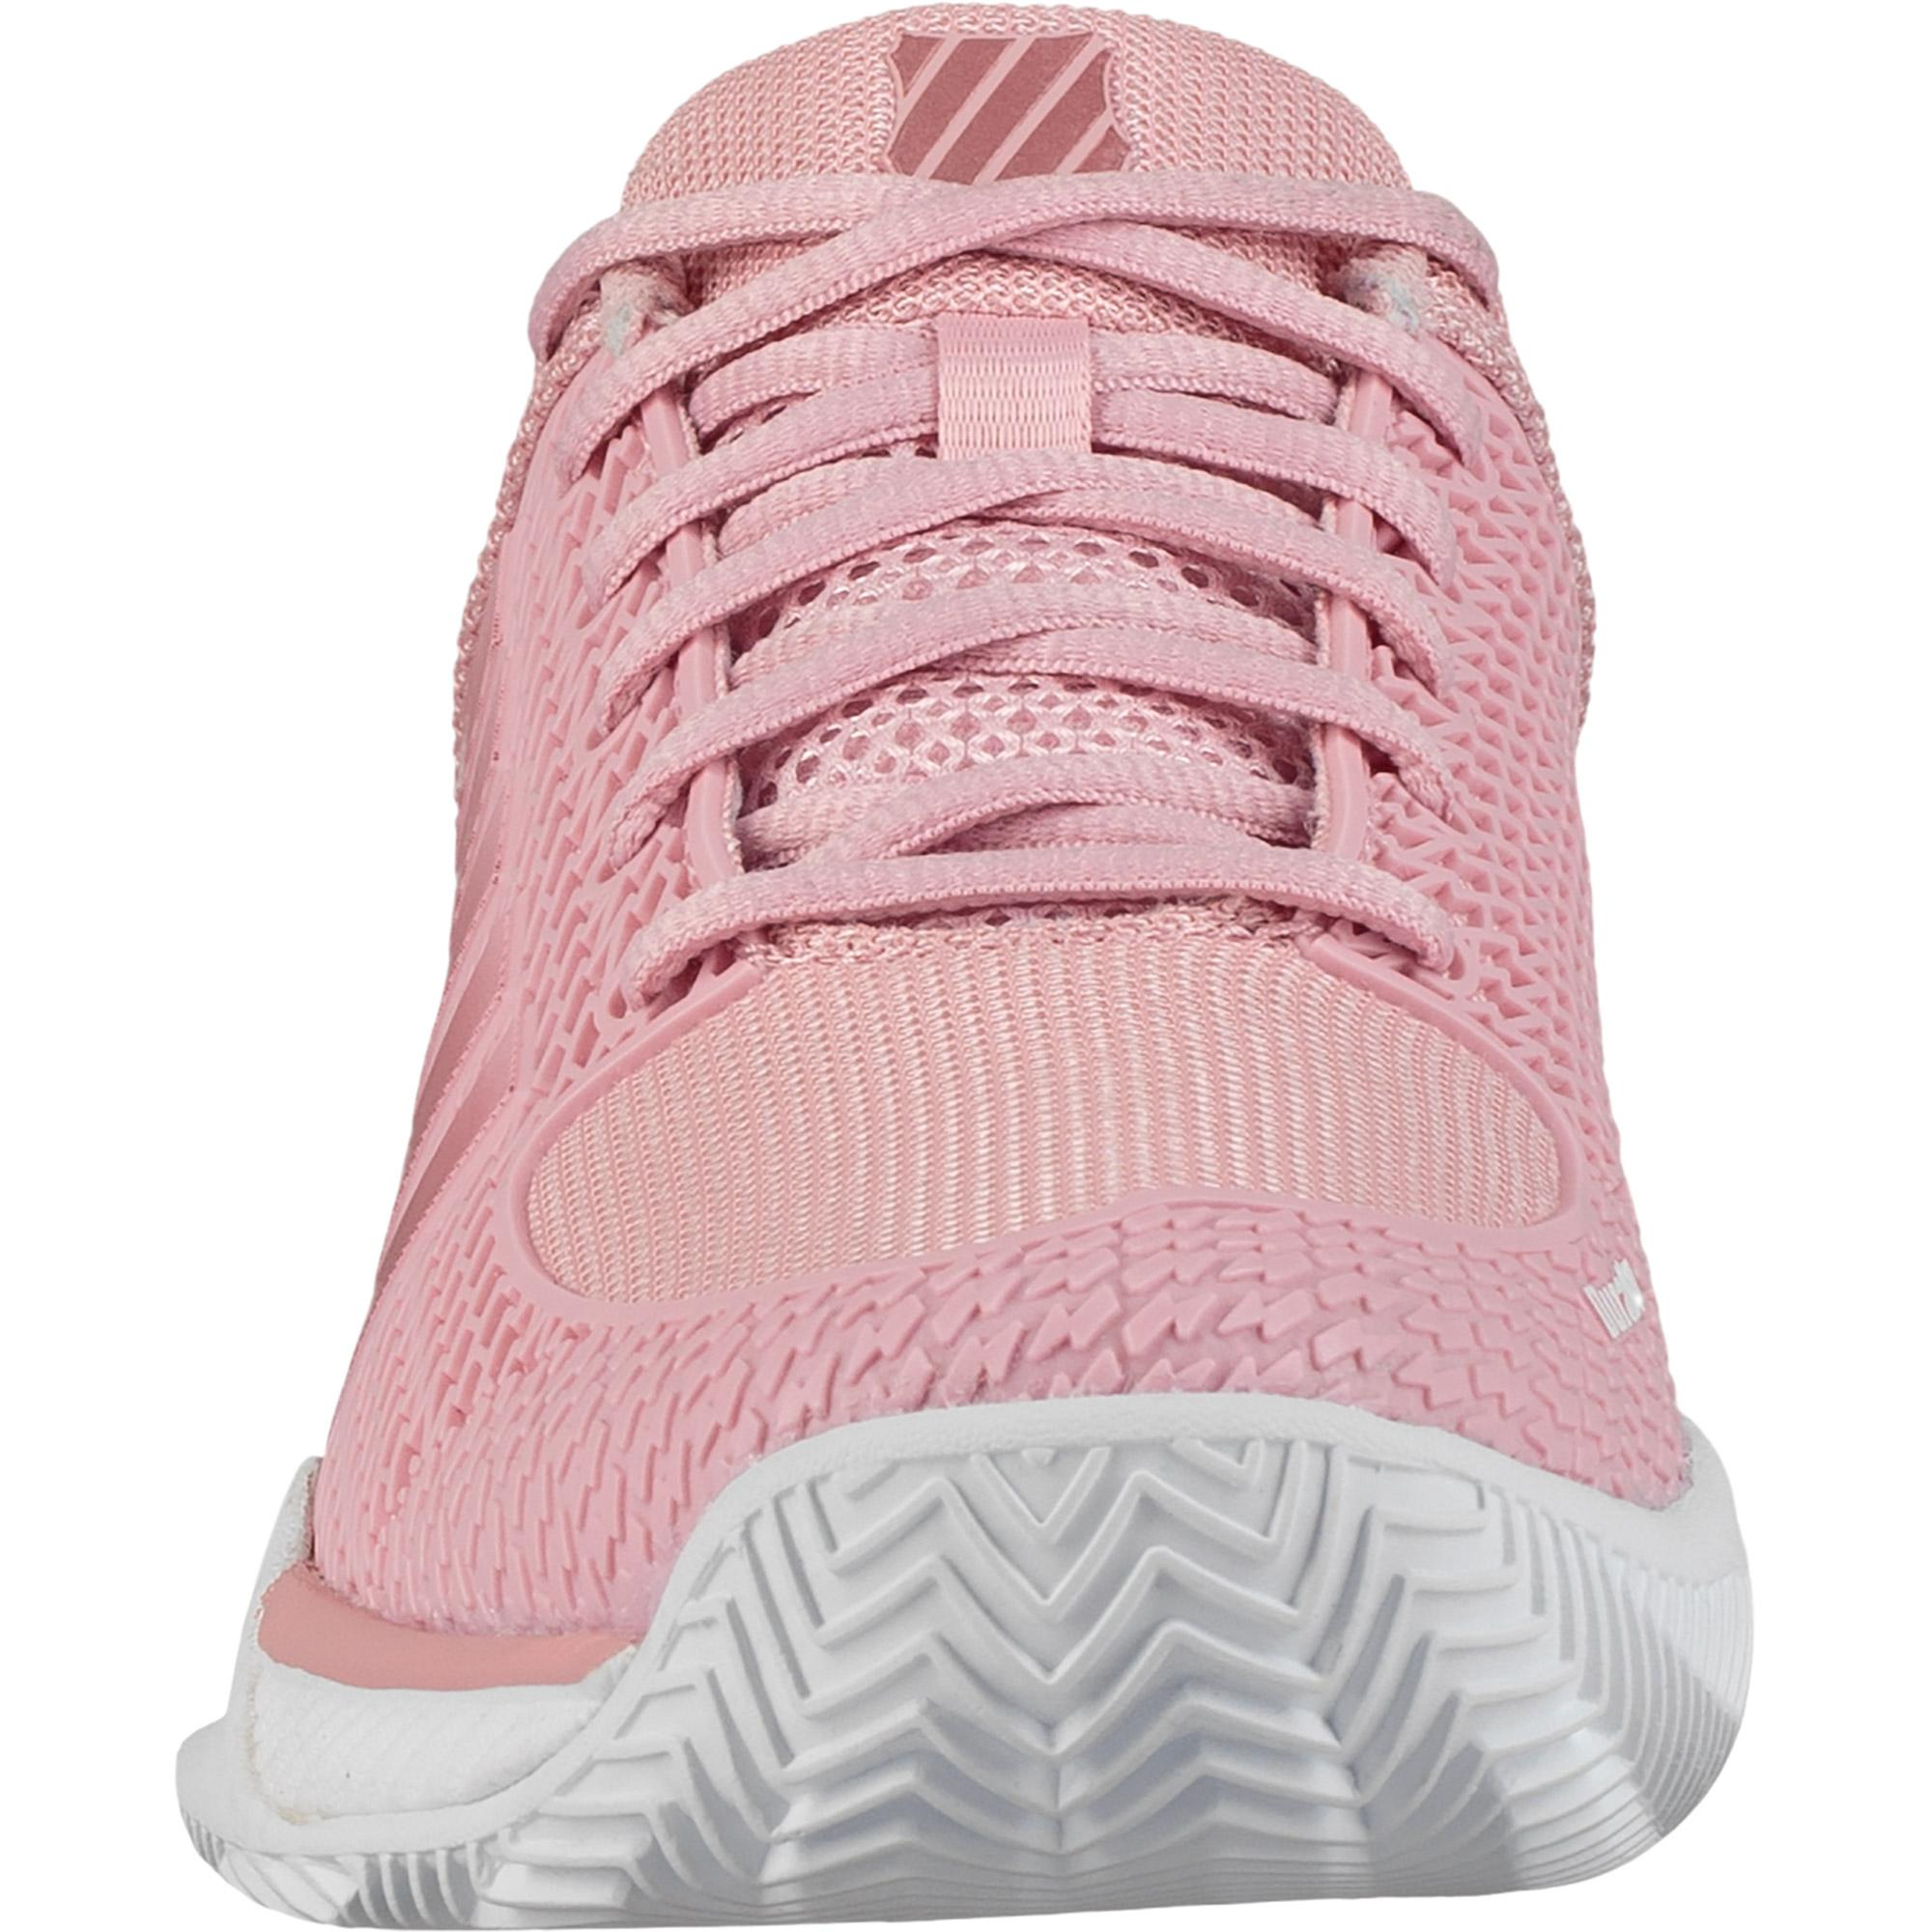 1361bb1e K-Swiss Womens Express Light HB Tennis Shoes - CoralBlush/White ...